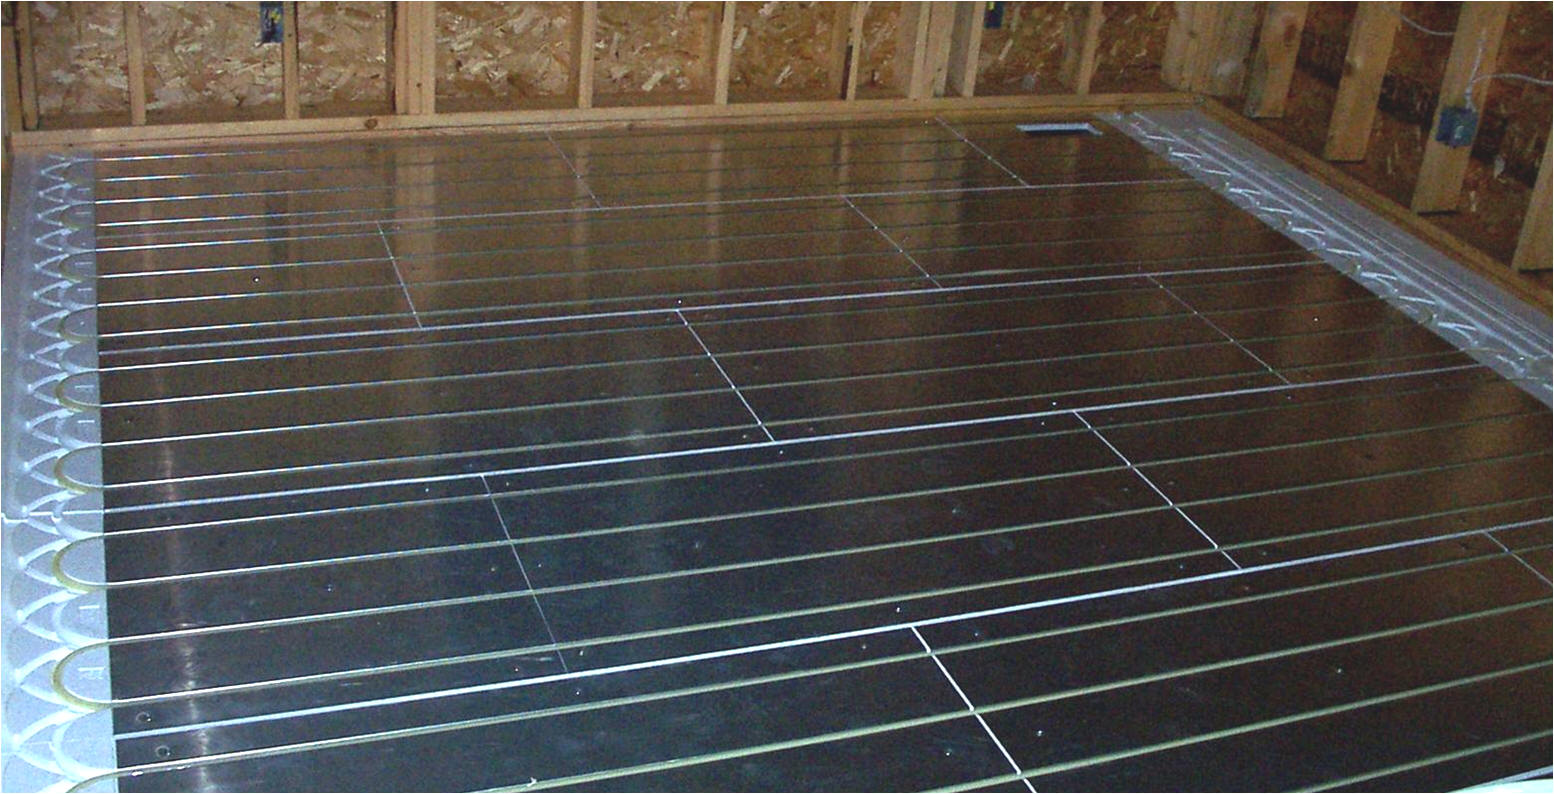 Radiant heating installations the good bad and ugly for Radiant heat flooring options